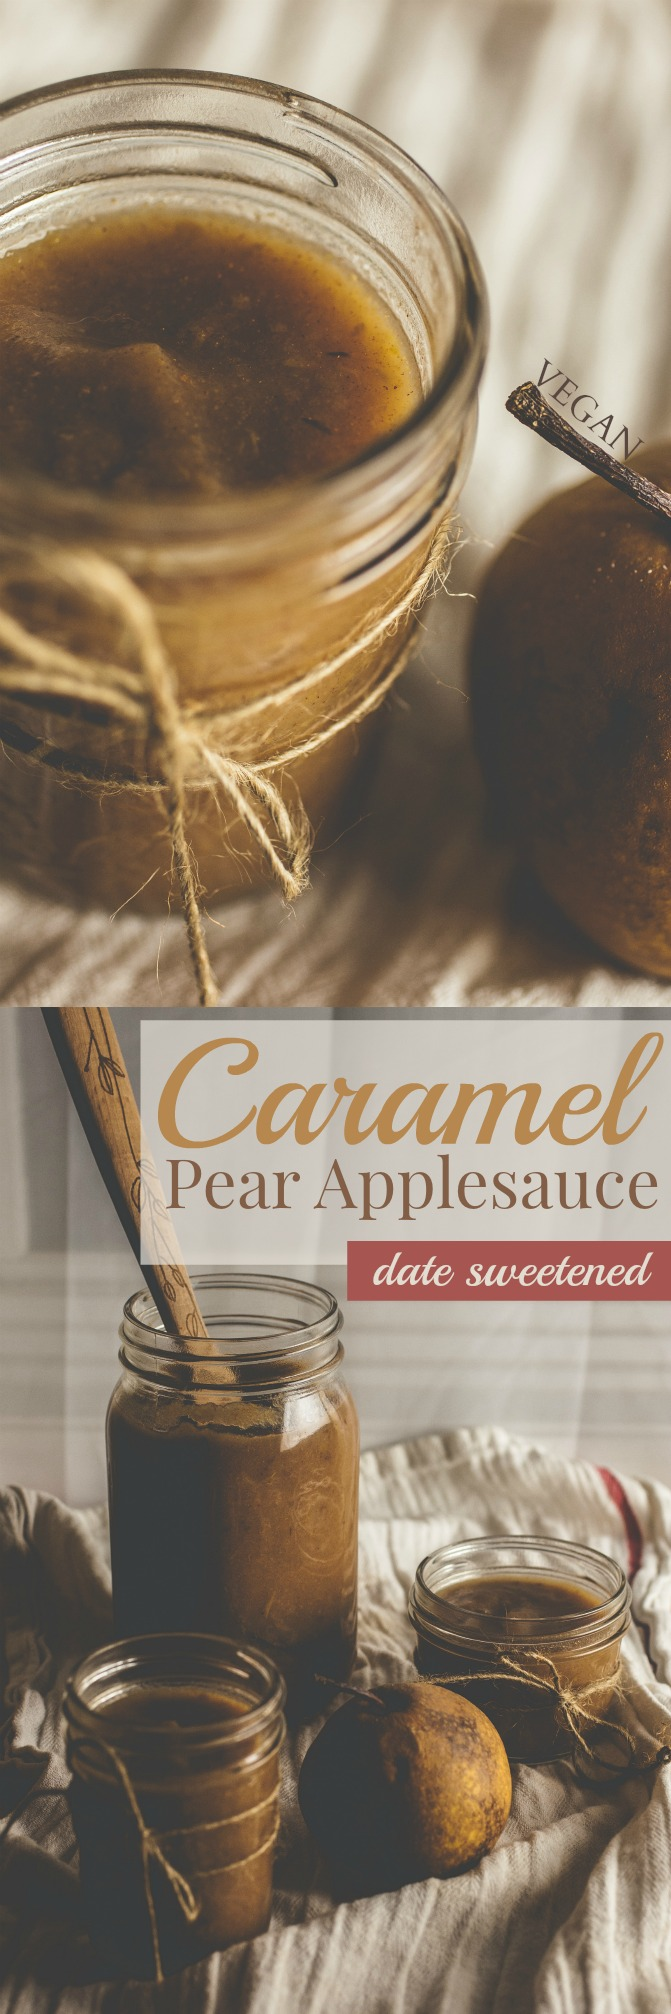 Produce On Parade - Caramel Pear Applesauce - Caramel dates sweeten this pear applesauce. It's foolproof, quick, and a great way to use up extra fruit. I can't believe I haven't been making this my entire life! Done in 10 minutes with a pressure cooker!